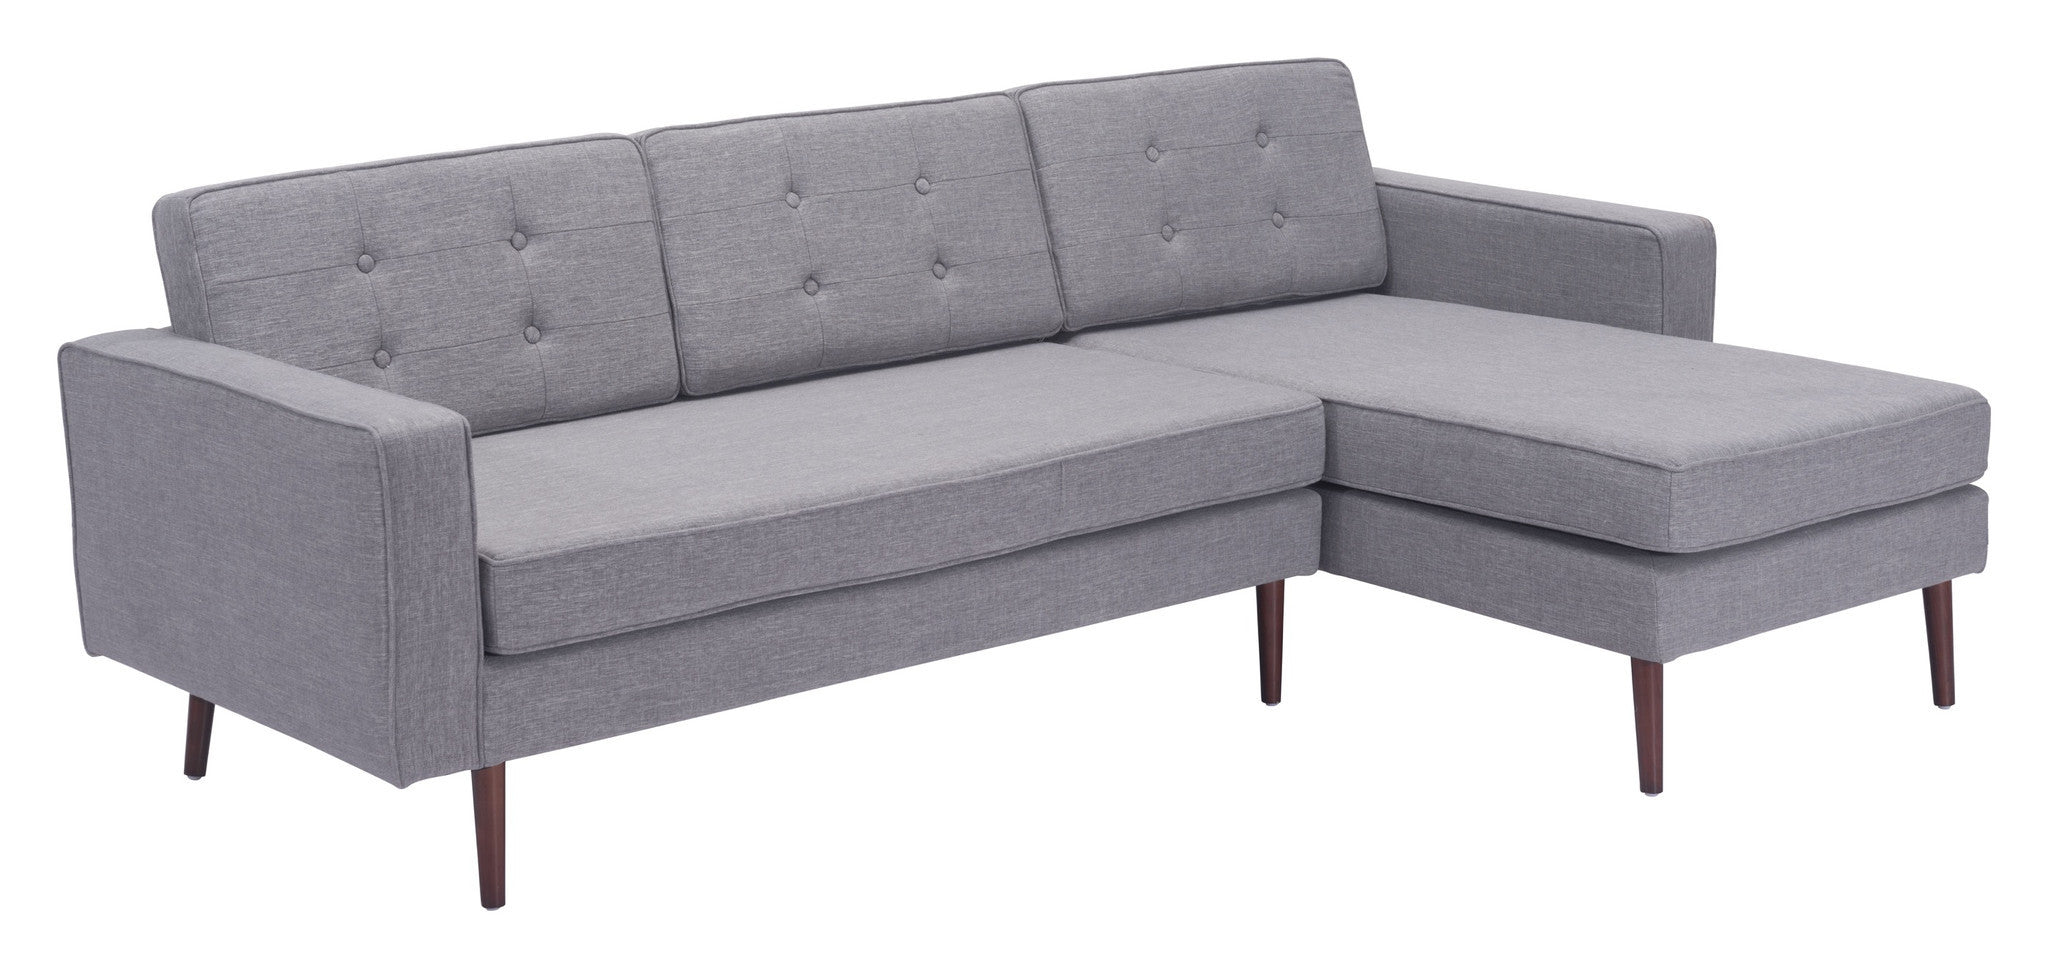 Pu Right Hand Facing Chaise Sectional Sofa in Button Tufted Gray Co